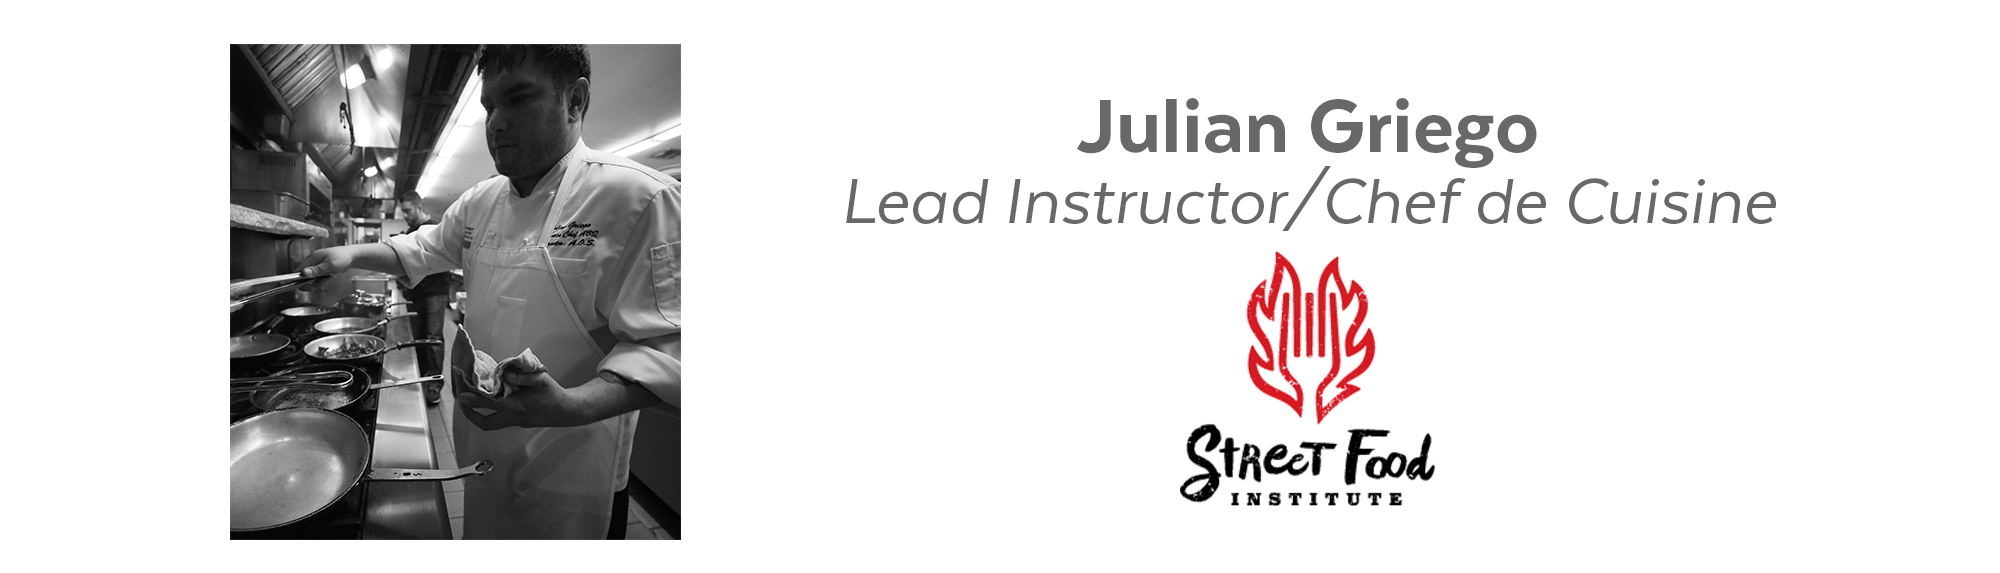 Julian Griego, Lead Instructor and Chef de Cuisine